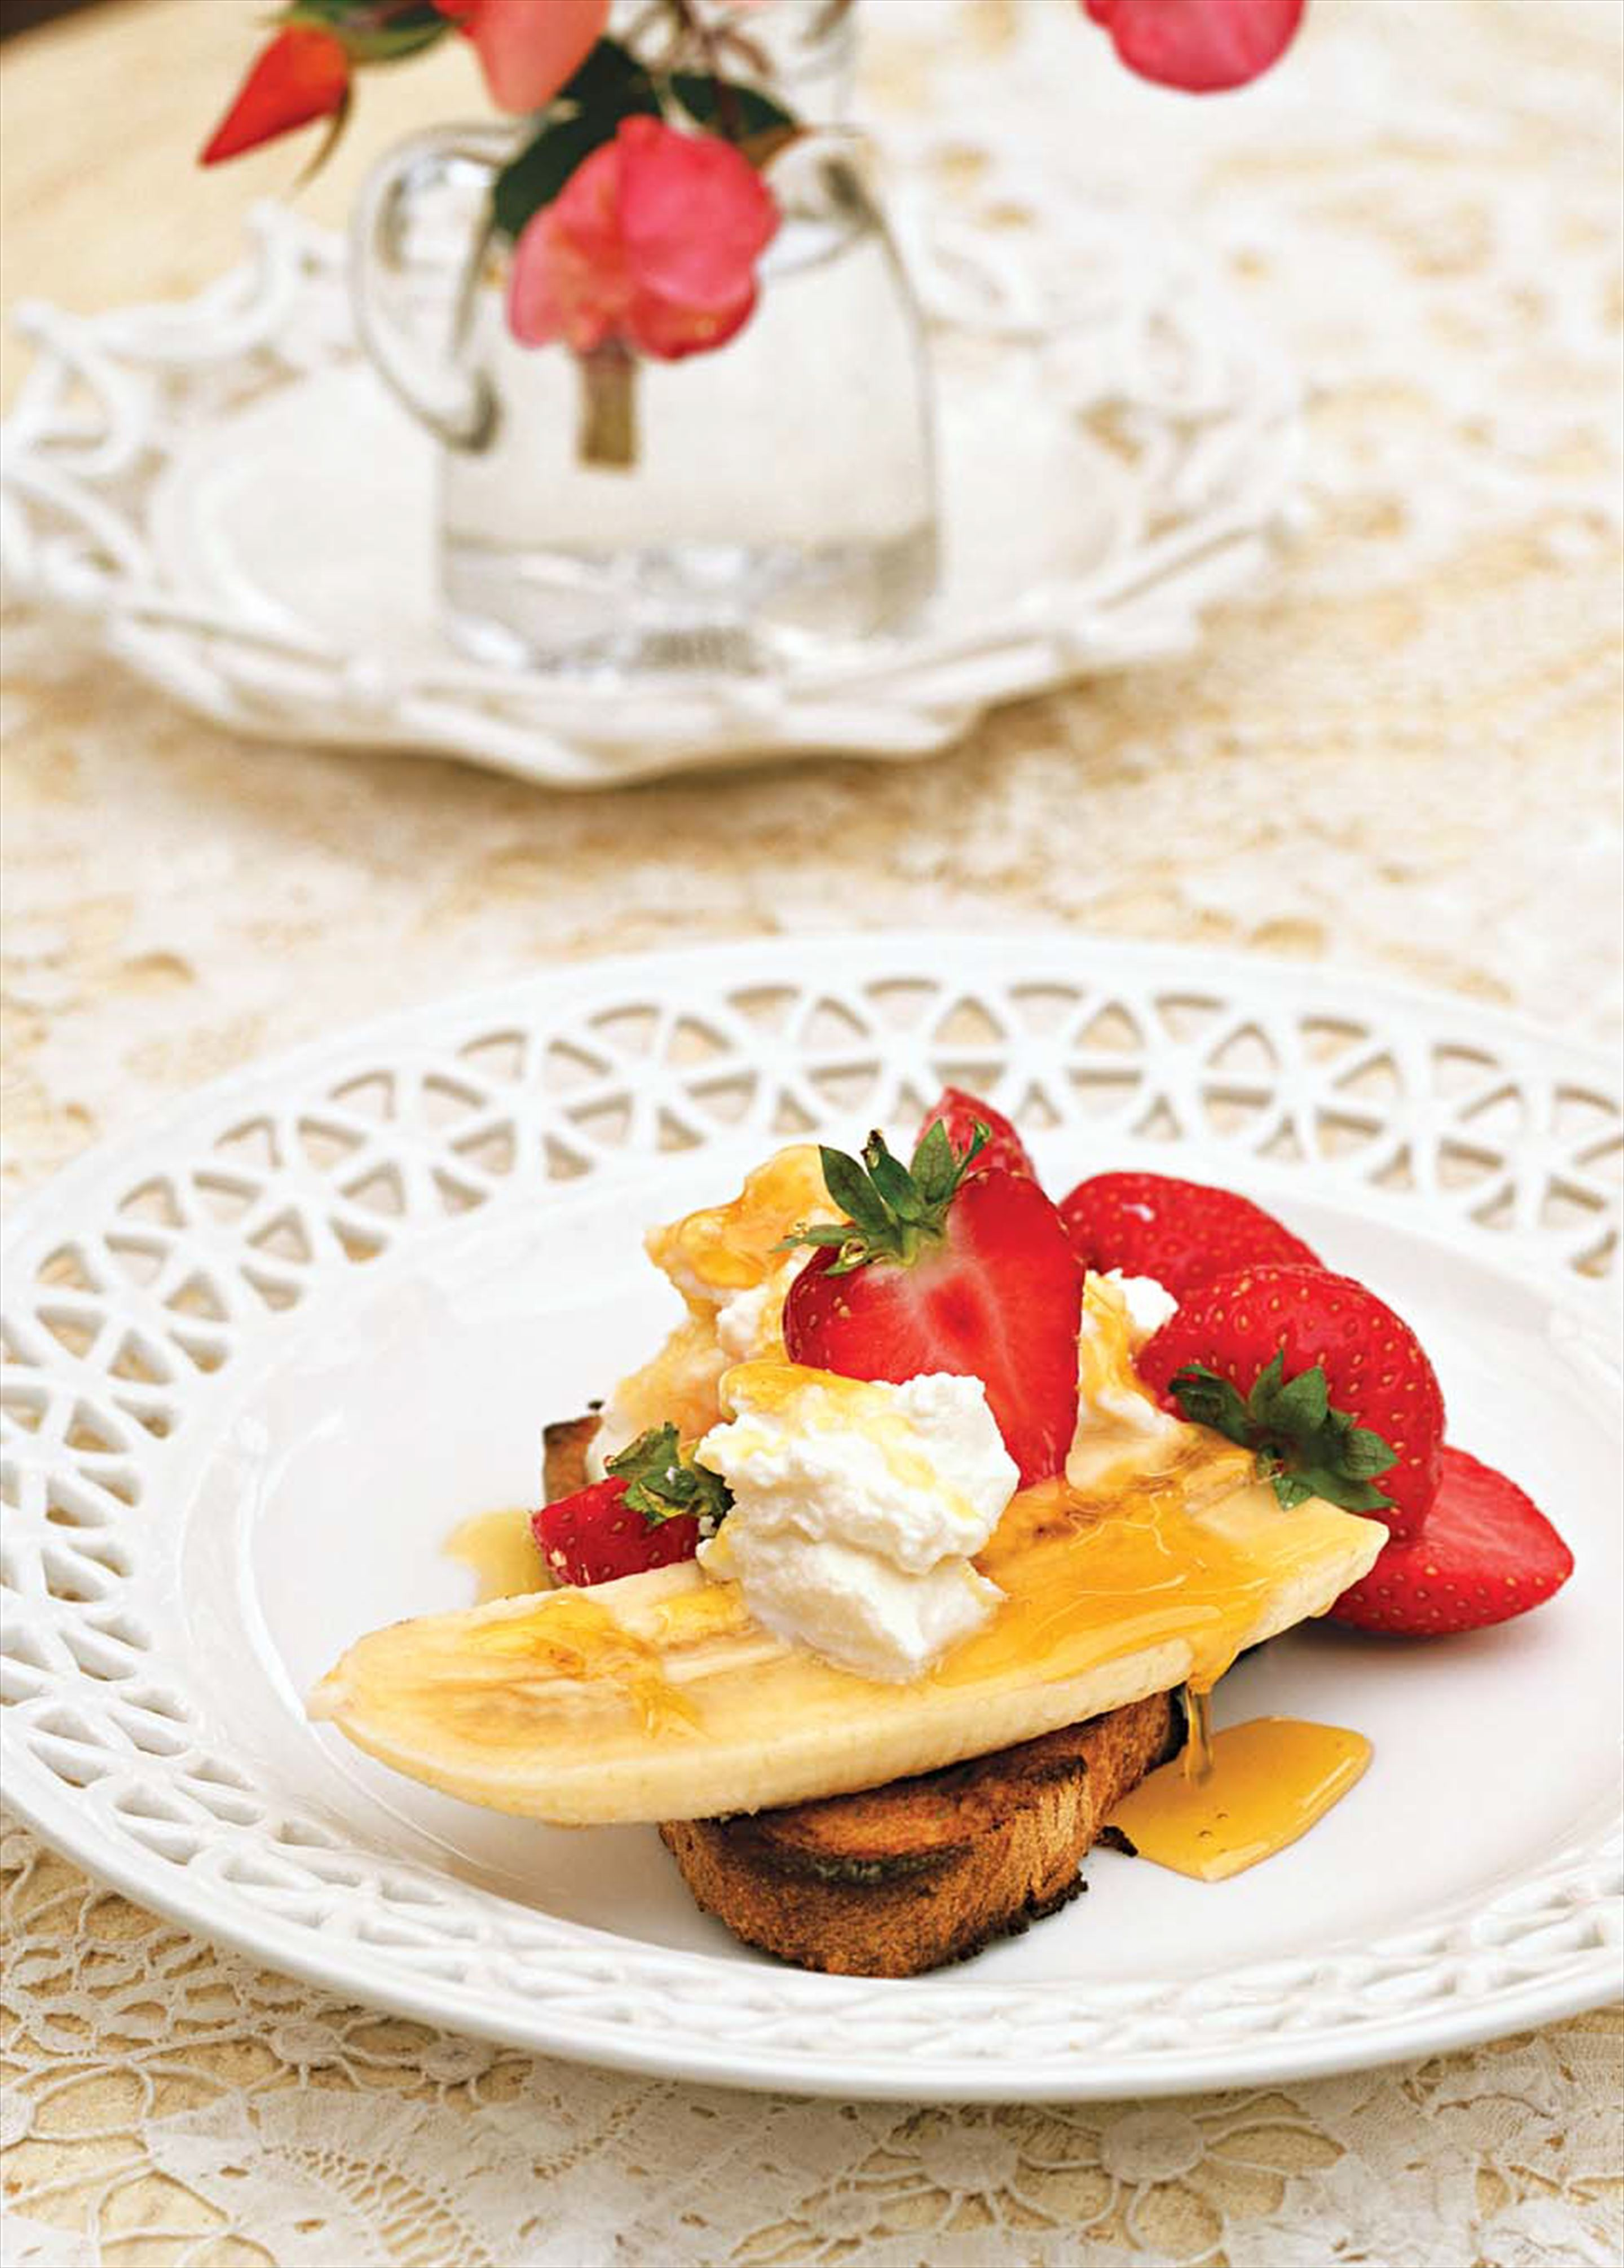 Sourdough toast with bananas, strawberries and ricotta